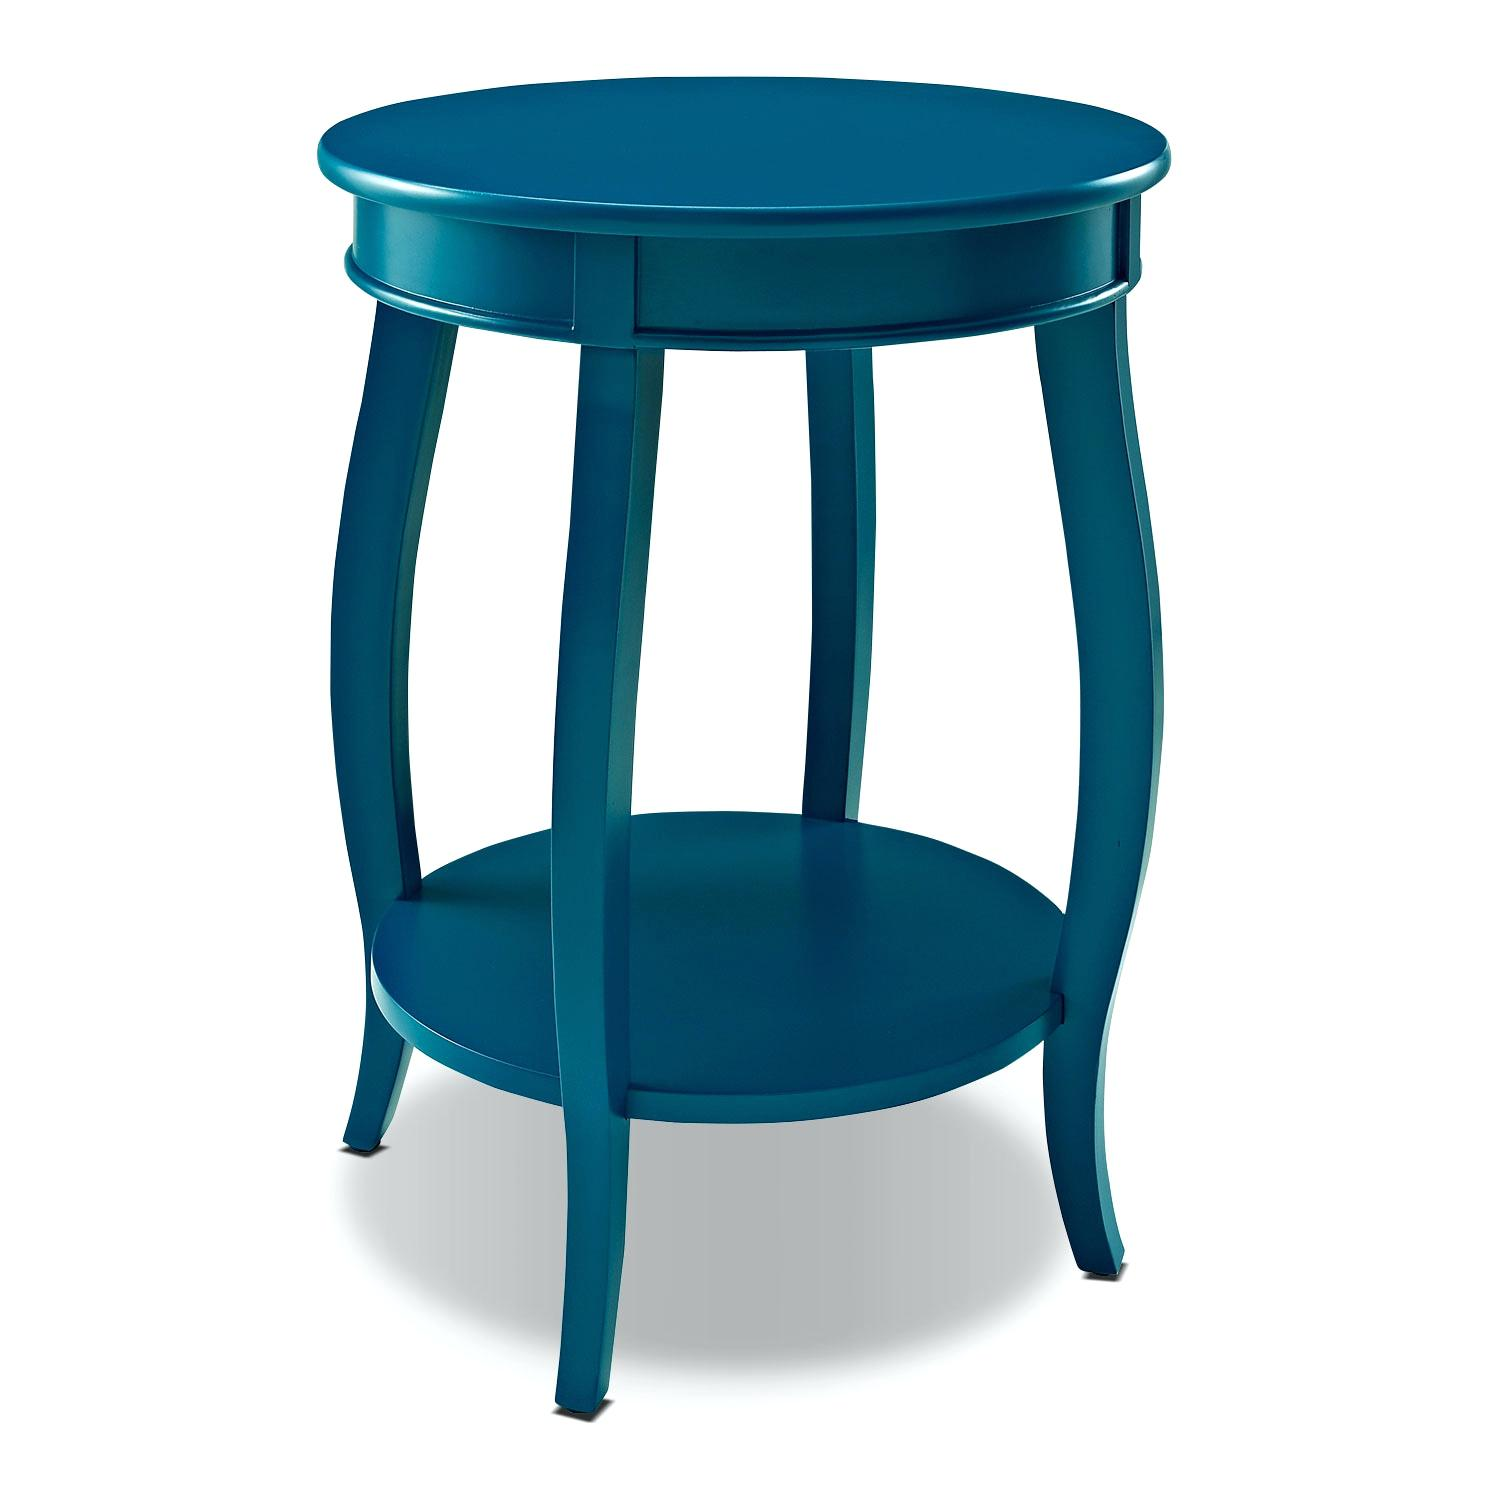 turquoise accent table and occasional furniture teal round naily blue headboard with shelves orange placemats napkins cherry end set concrete patio clearance outdoor side linon